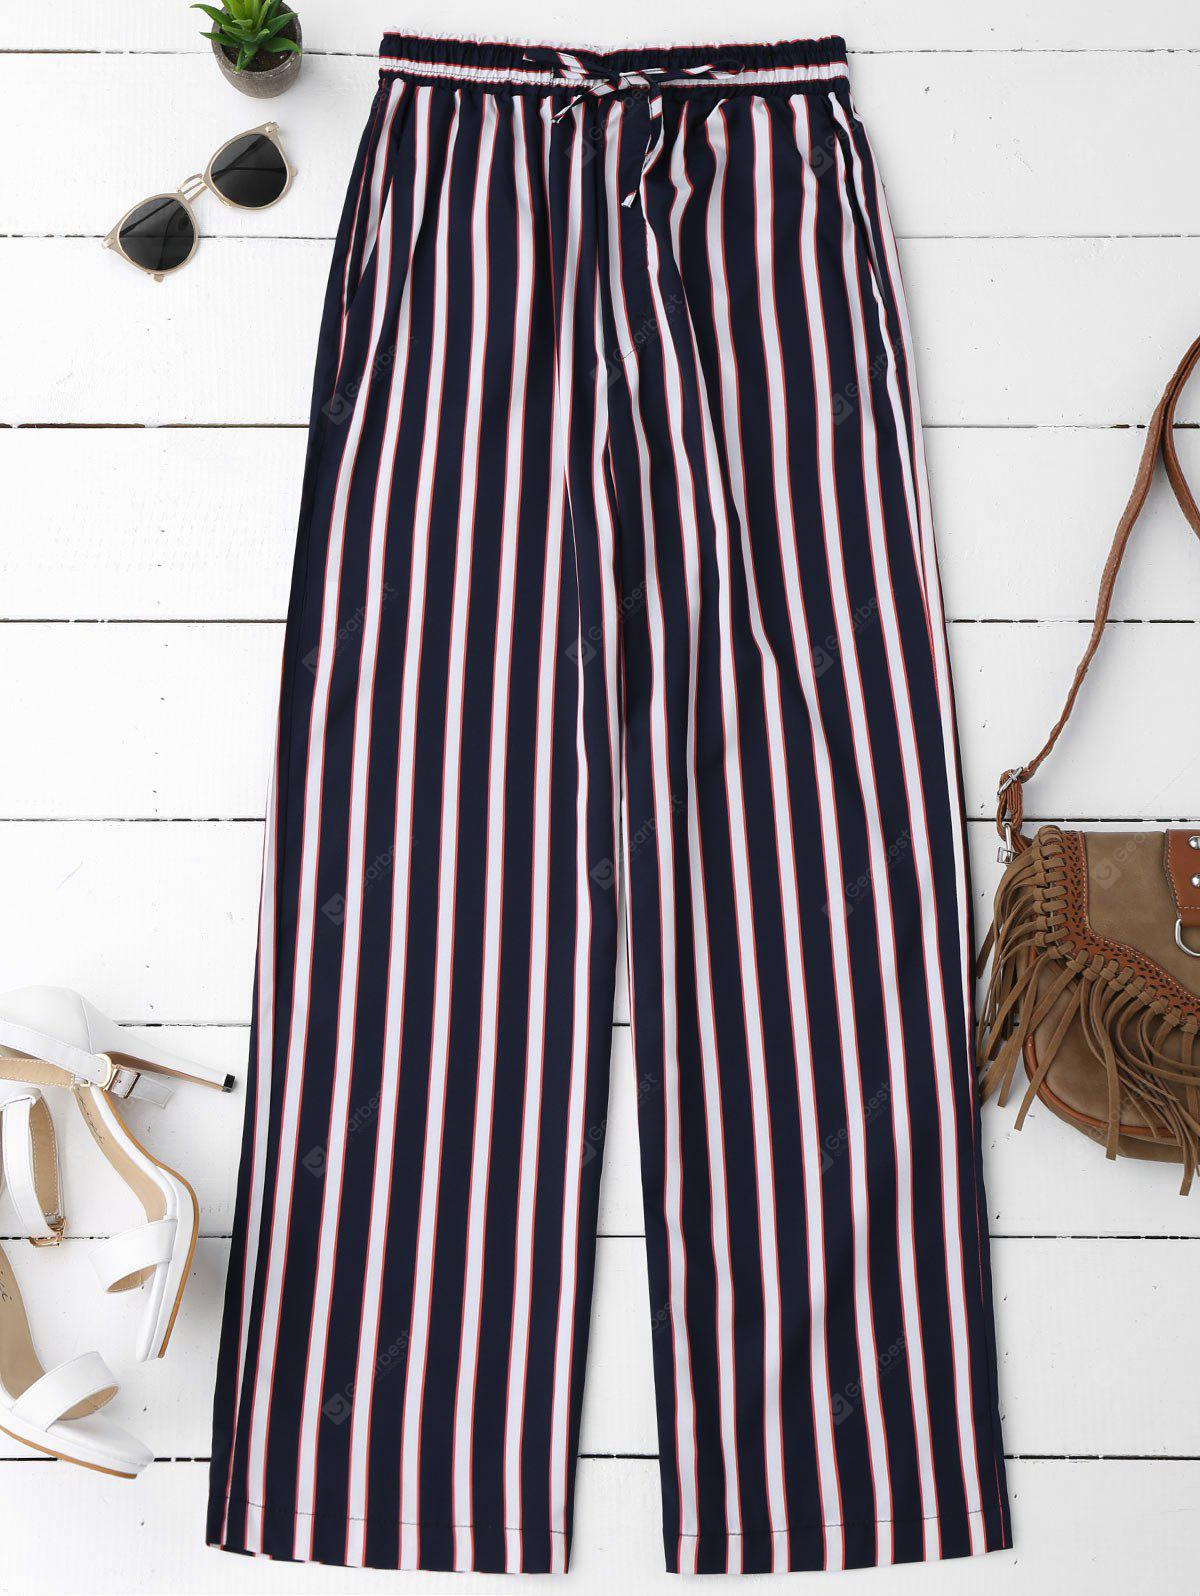 STRIPE L Striped Elastic Waist Wide Leg Pants